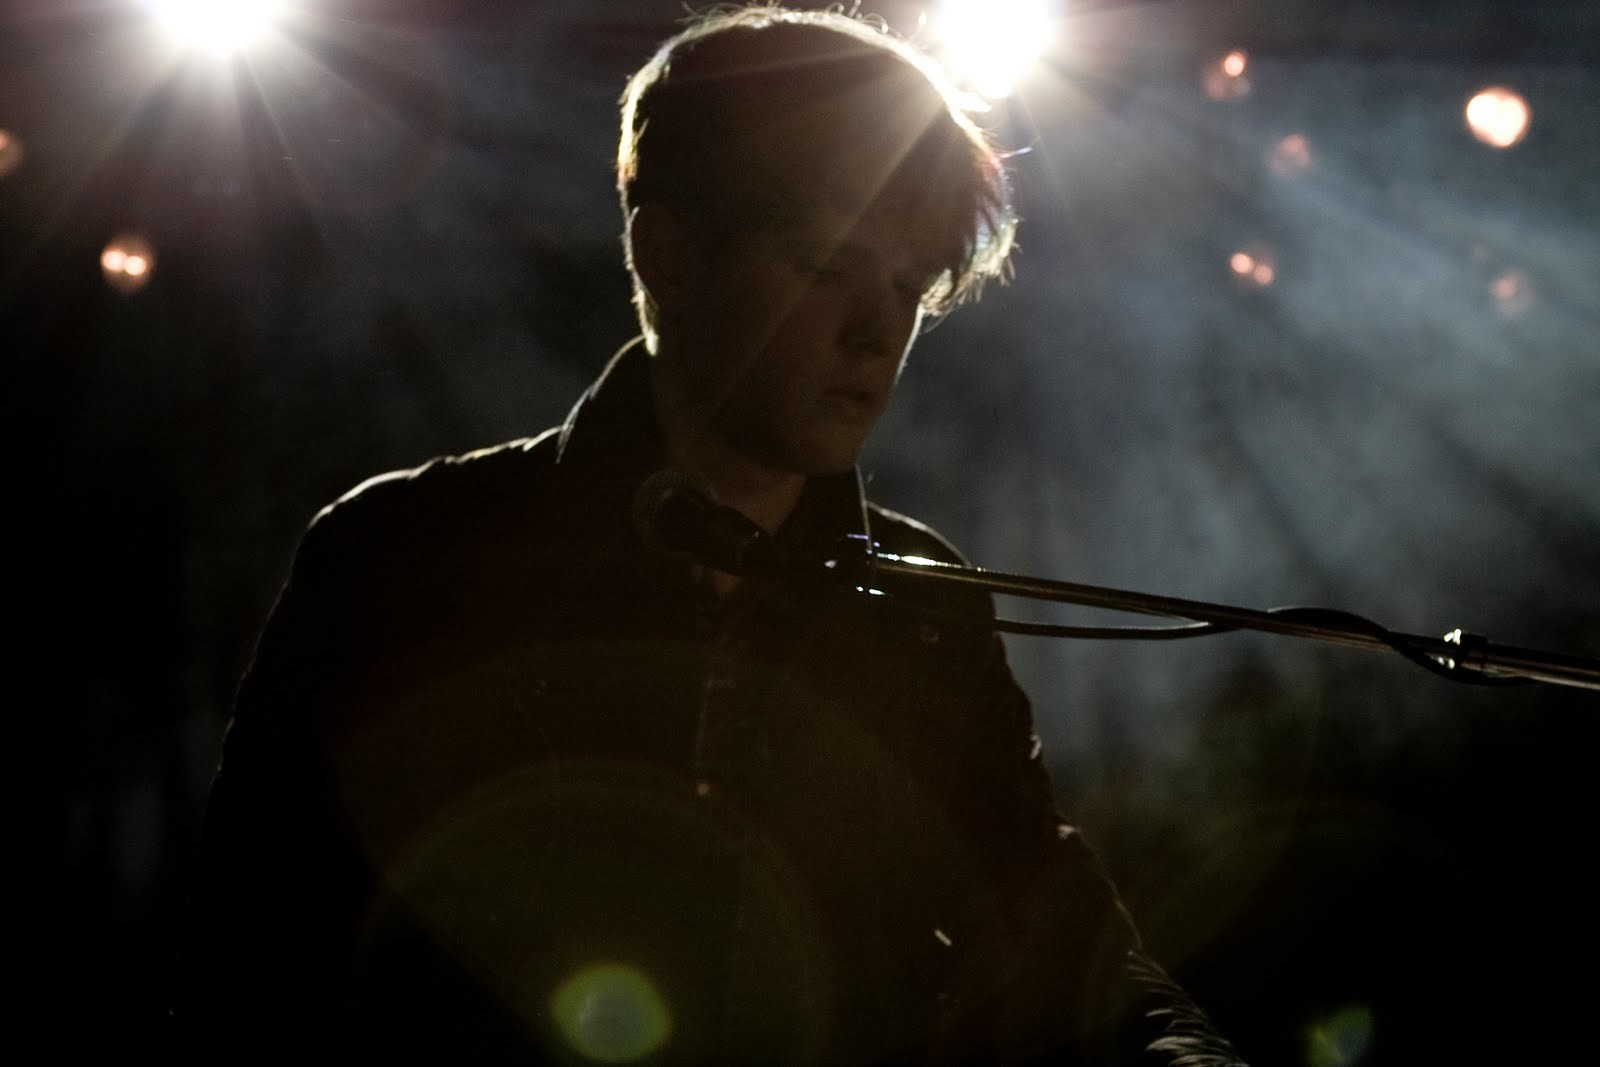 Pitchfork 2014 / Jour 1 : James Blake, Jon Hopkins, Mogwai, The War on Drugs, The Notwist...